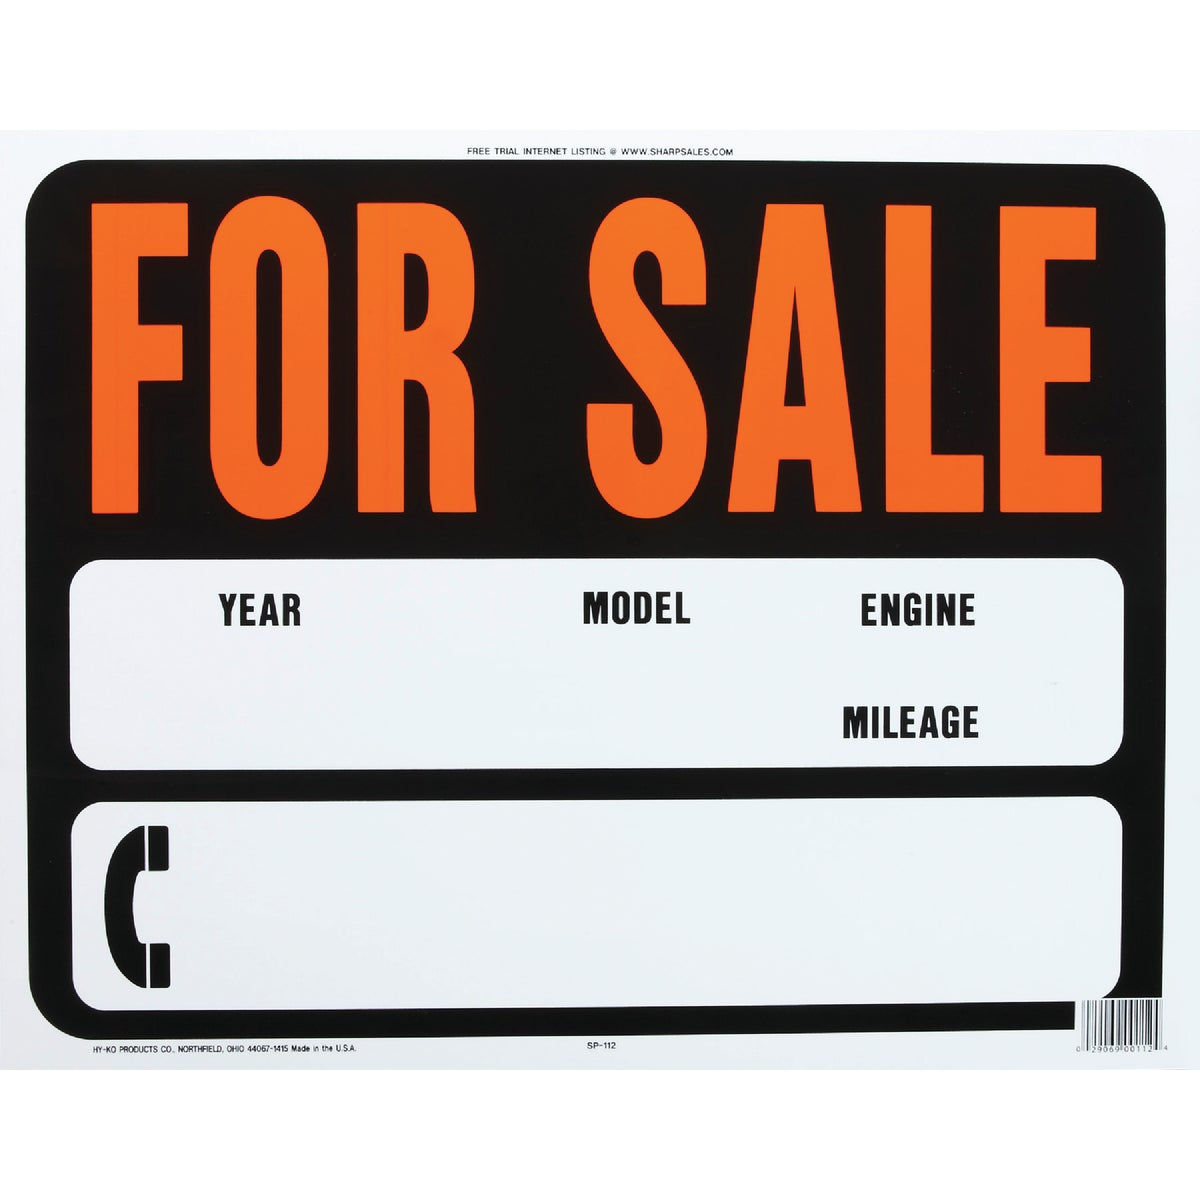 15X19 AUTO FOR SALE SIGN - SP-112 by Hy Ko Prods Co